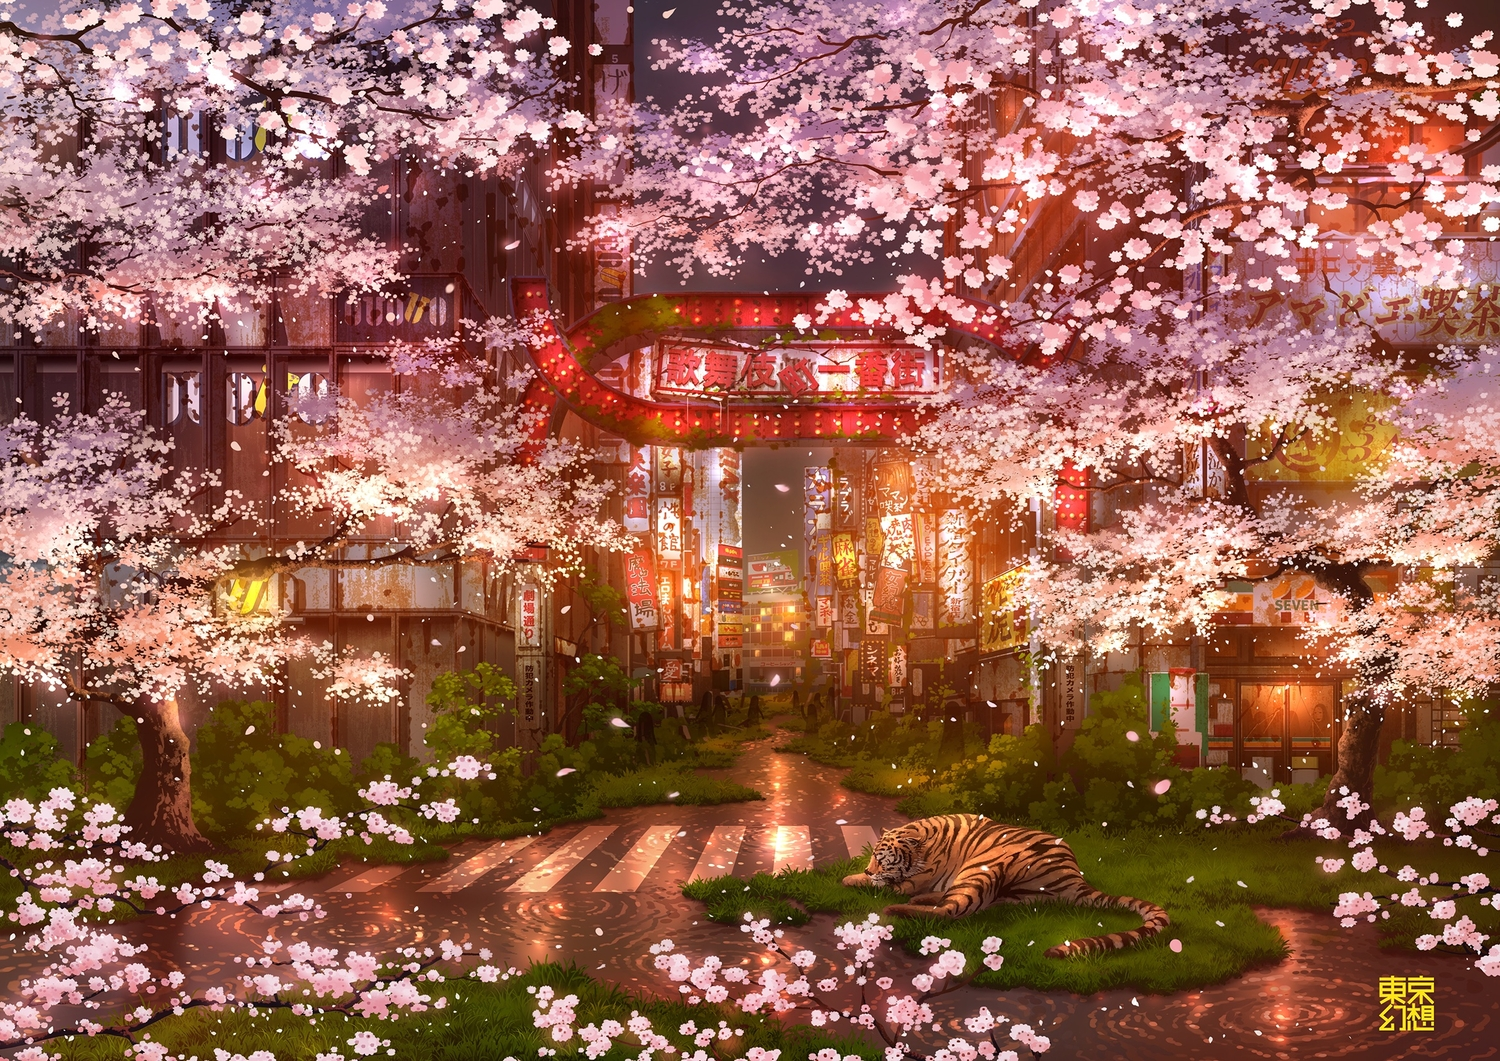 animal building cherry_blossoms city flowers grass night original ruins scenic tiger tokyogenso tree water watermark